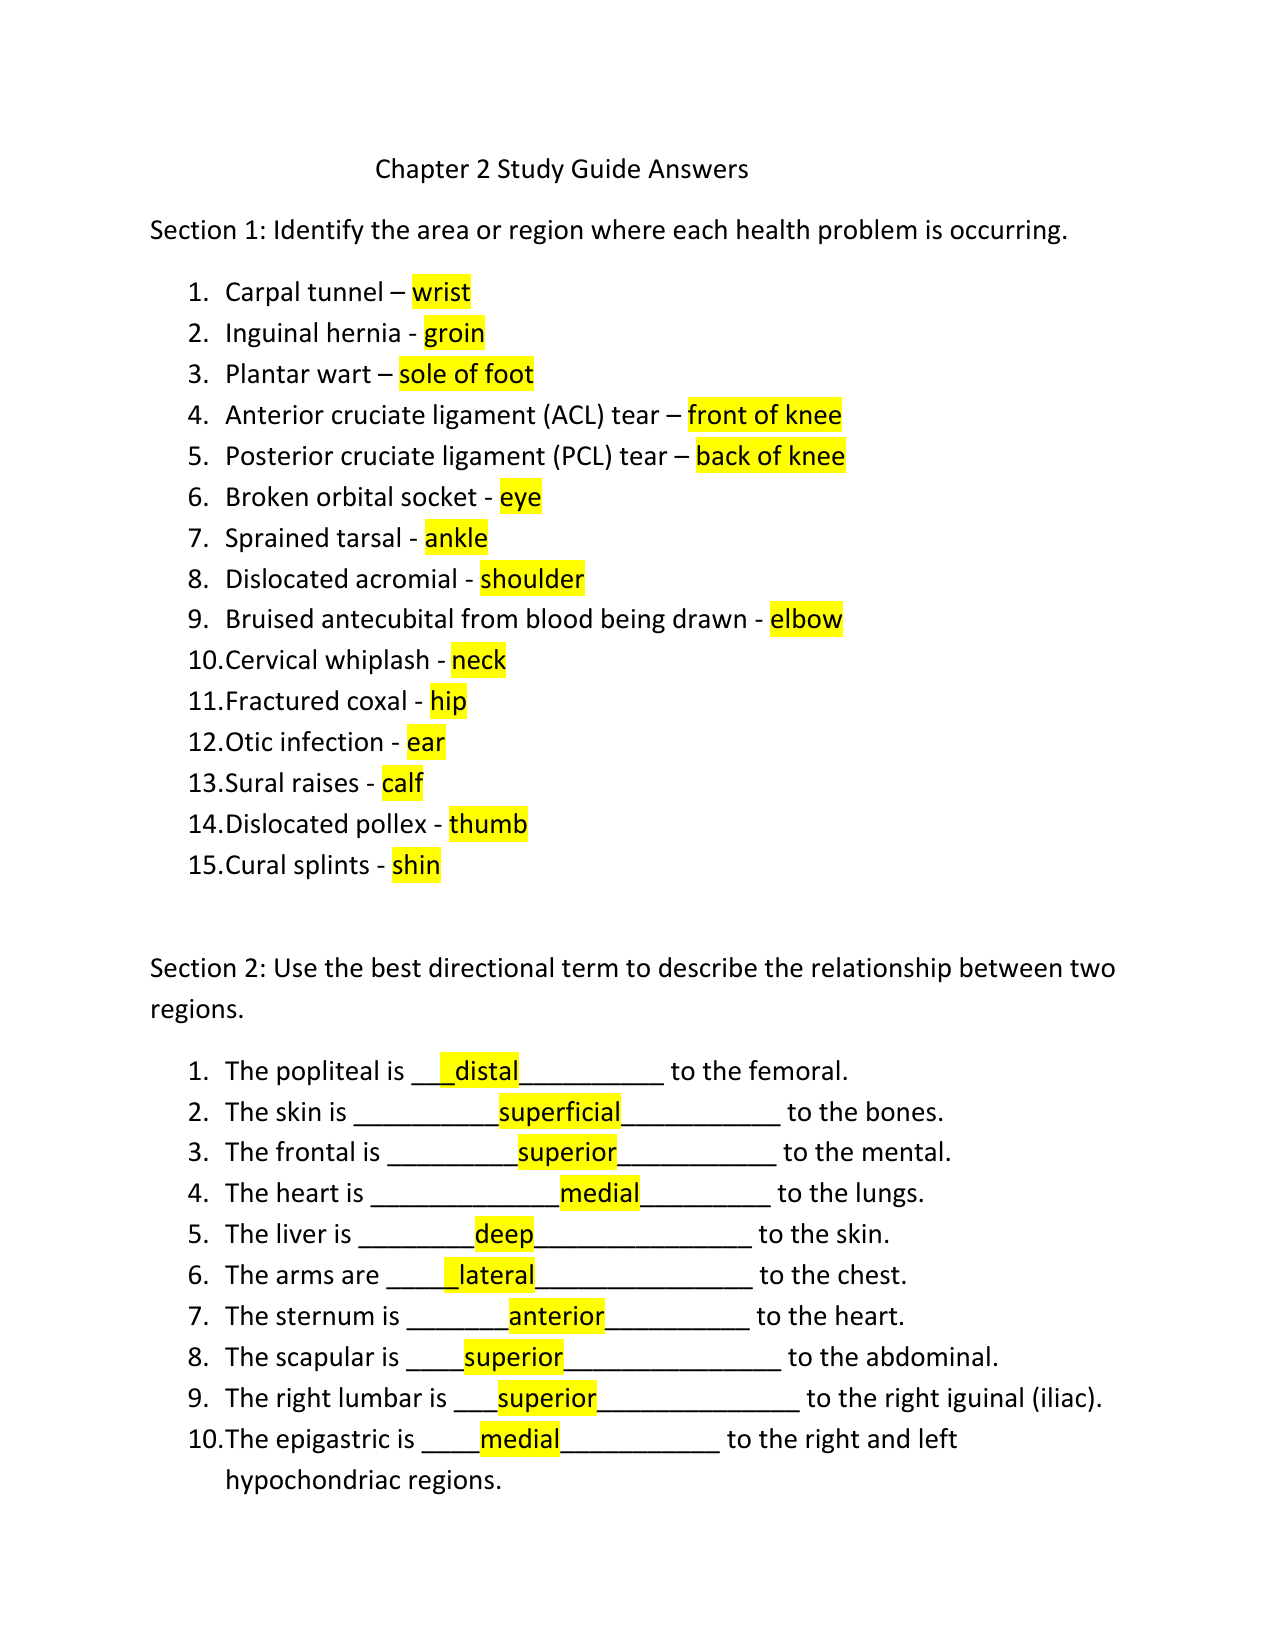 Chapter 2 Study Guide Answers